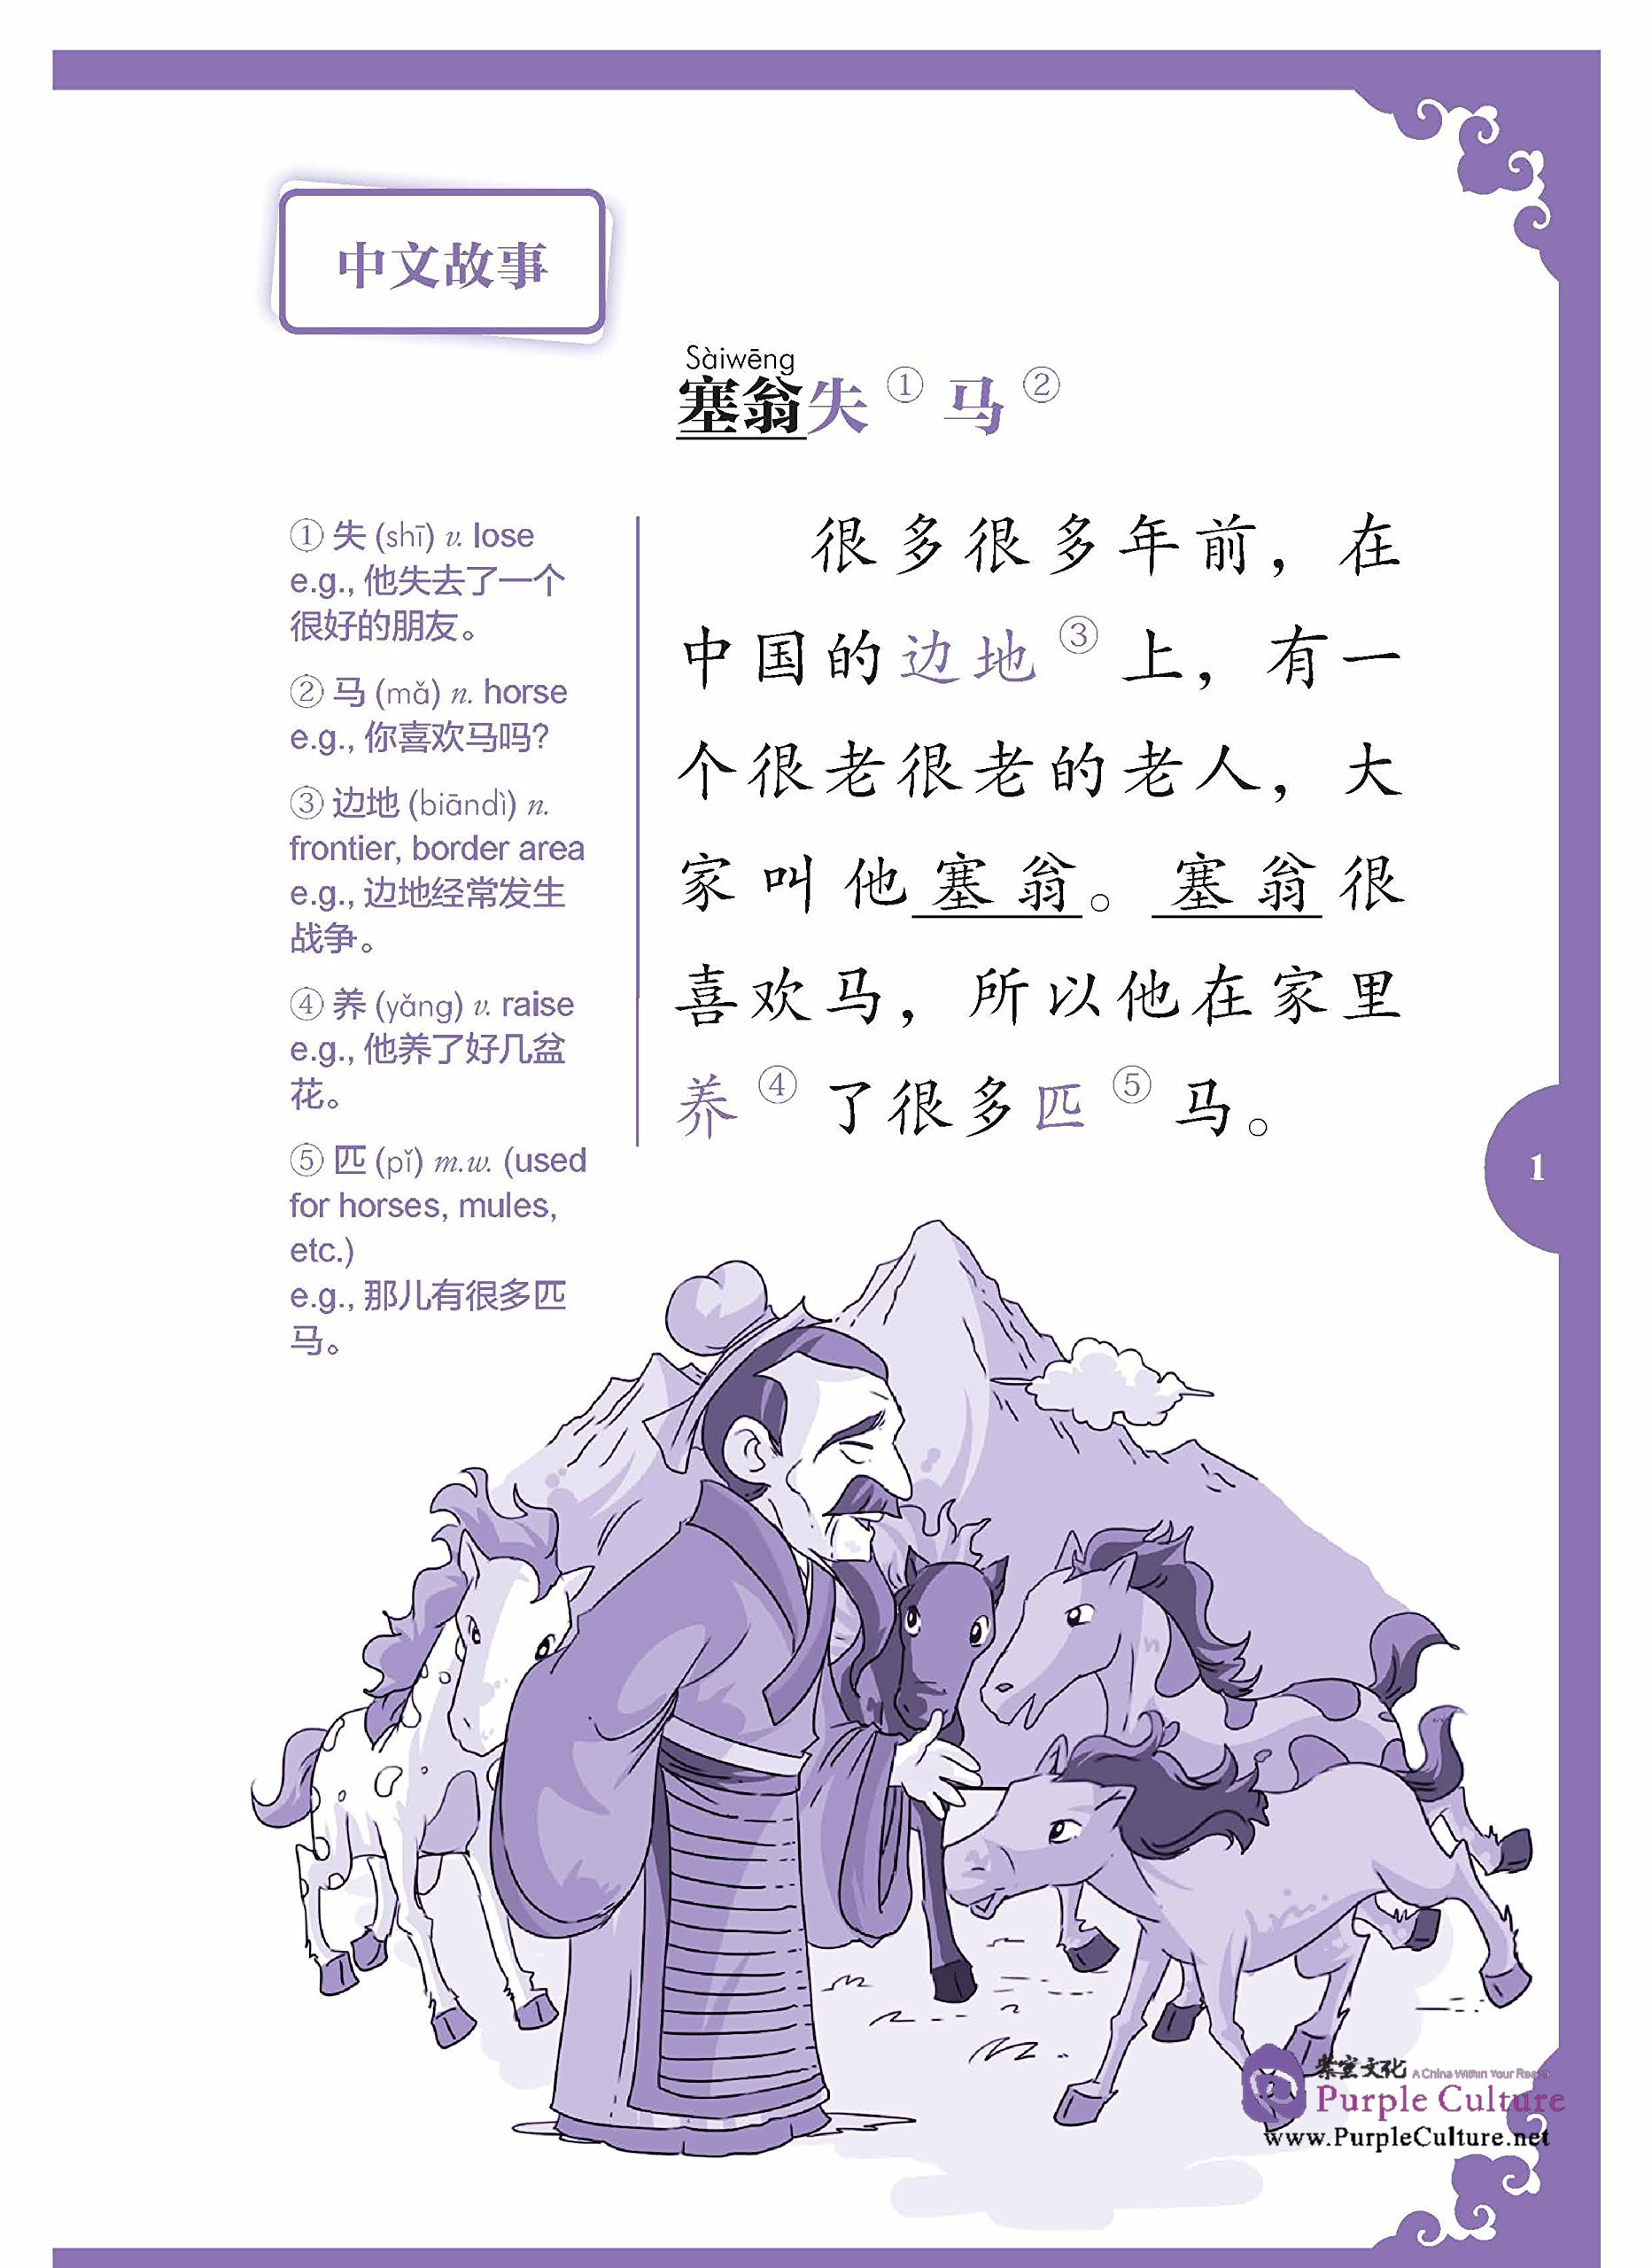 Rainbow Bridge Graded Chinese Reader Starter 150